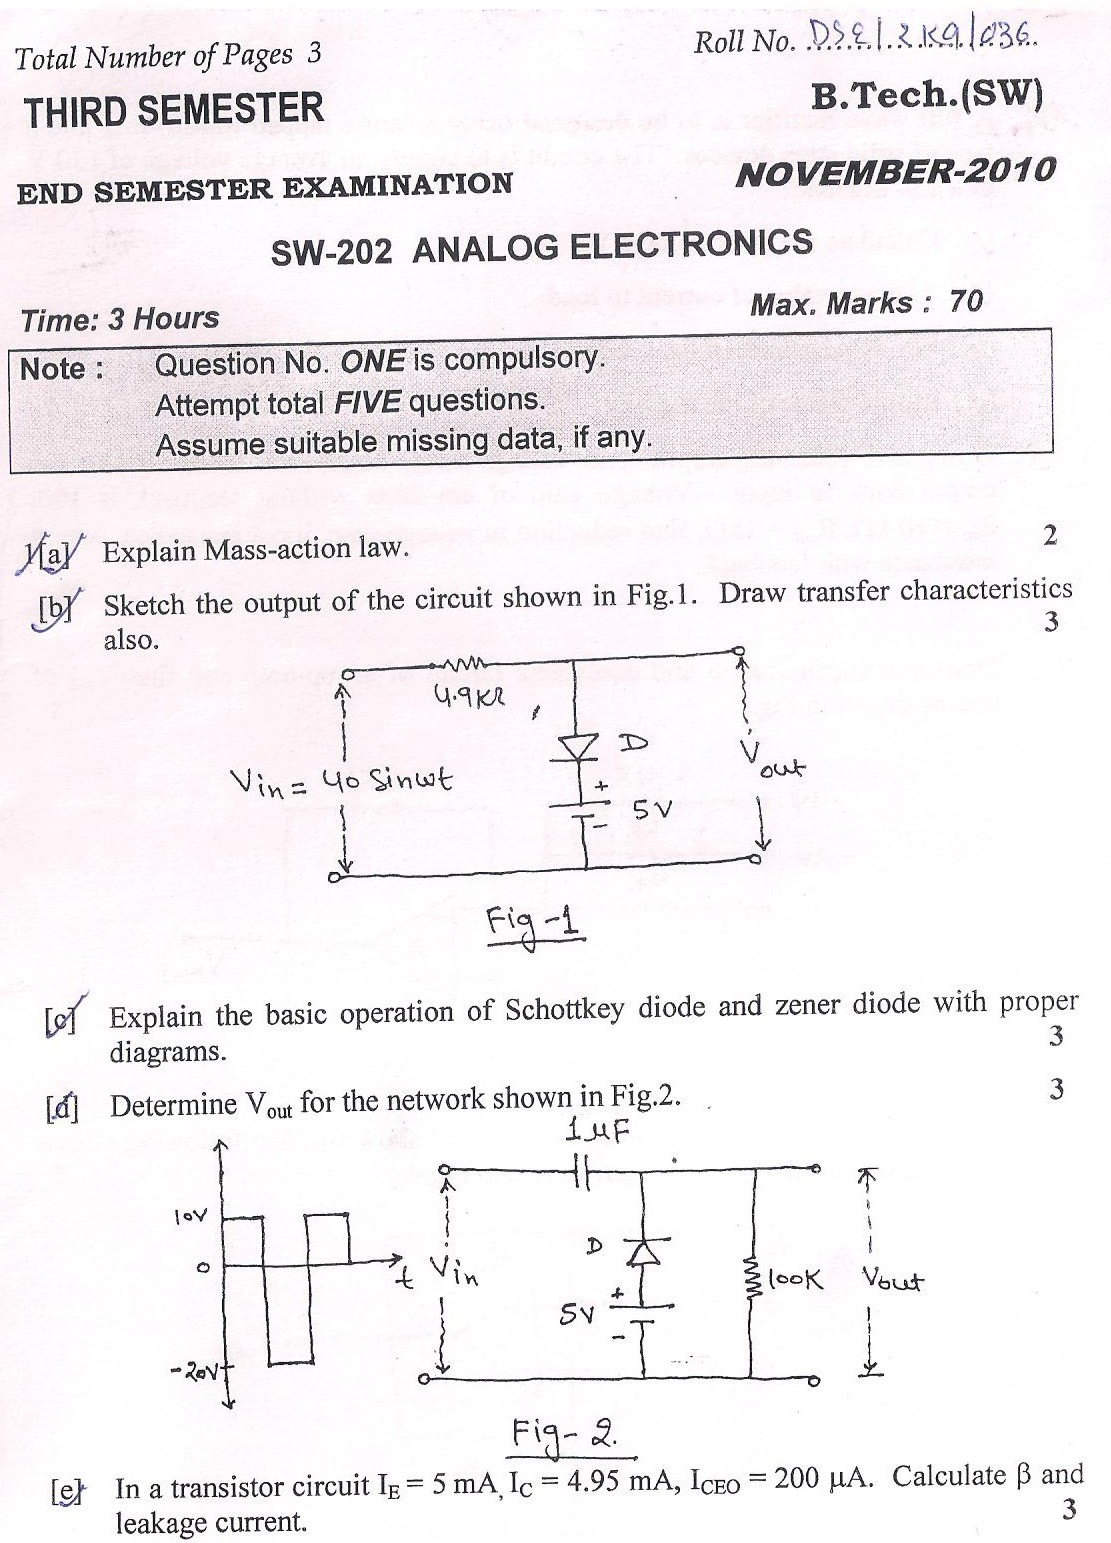 DTU Question Papers 2010 – 3 Semester - End Sem - SW-202